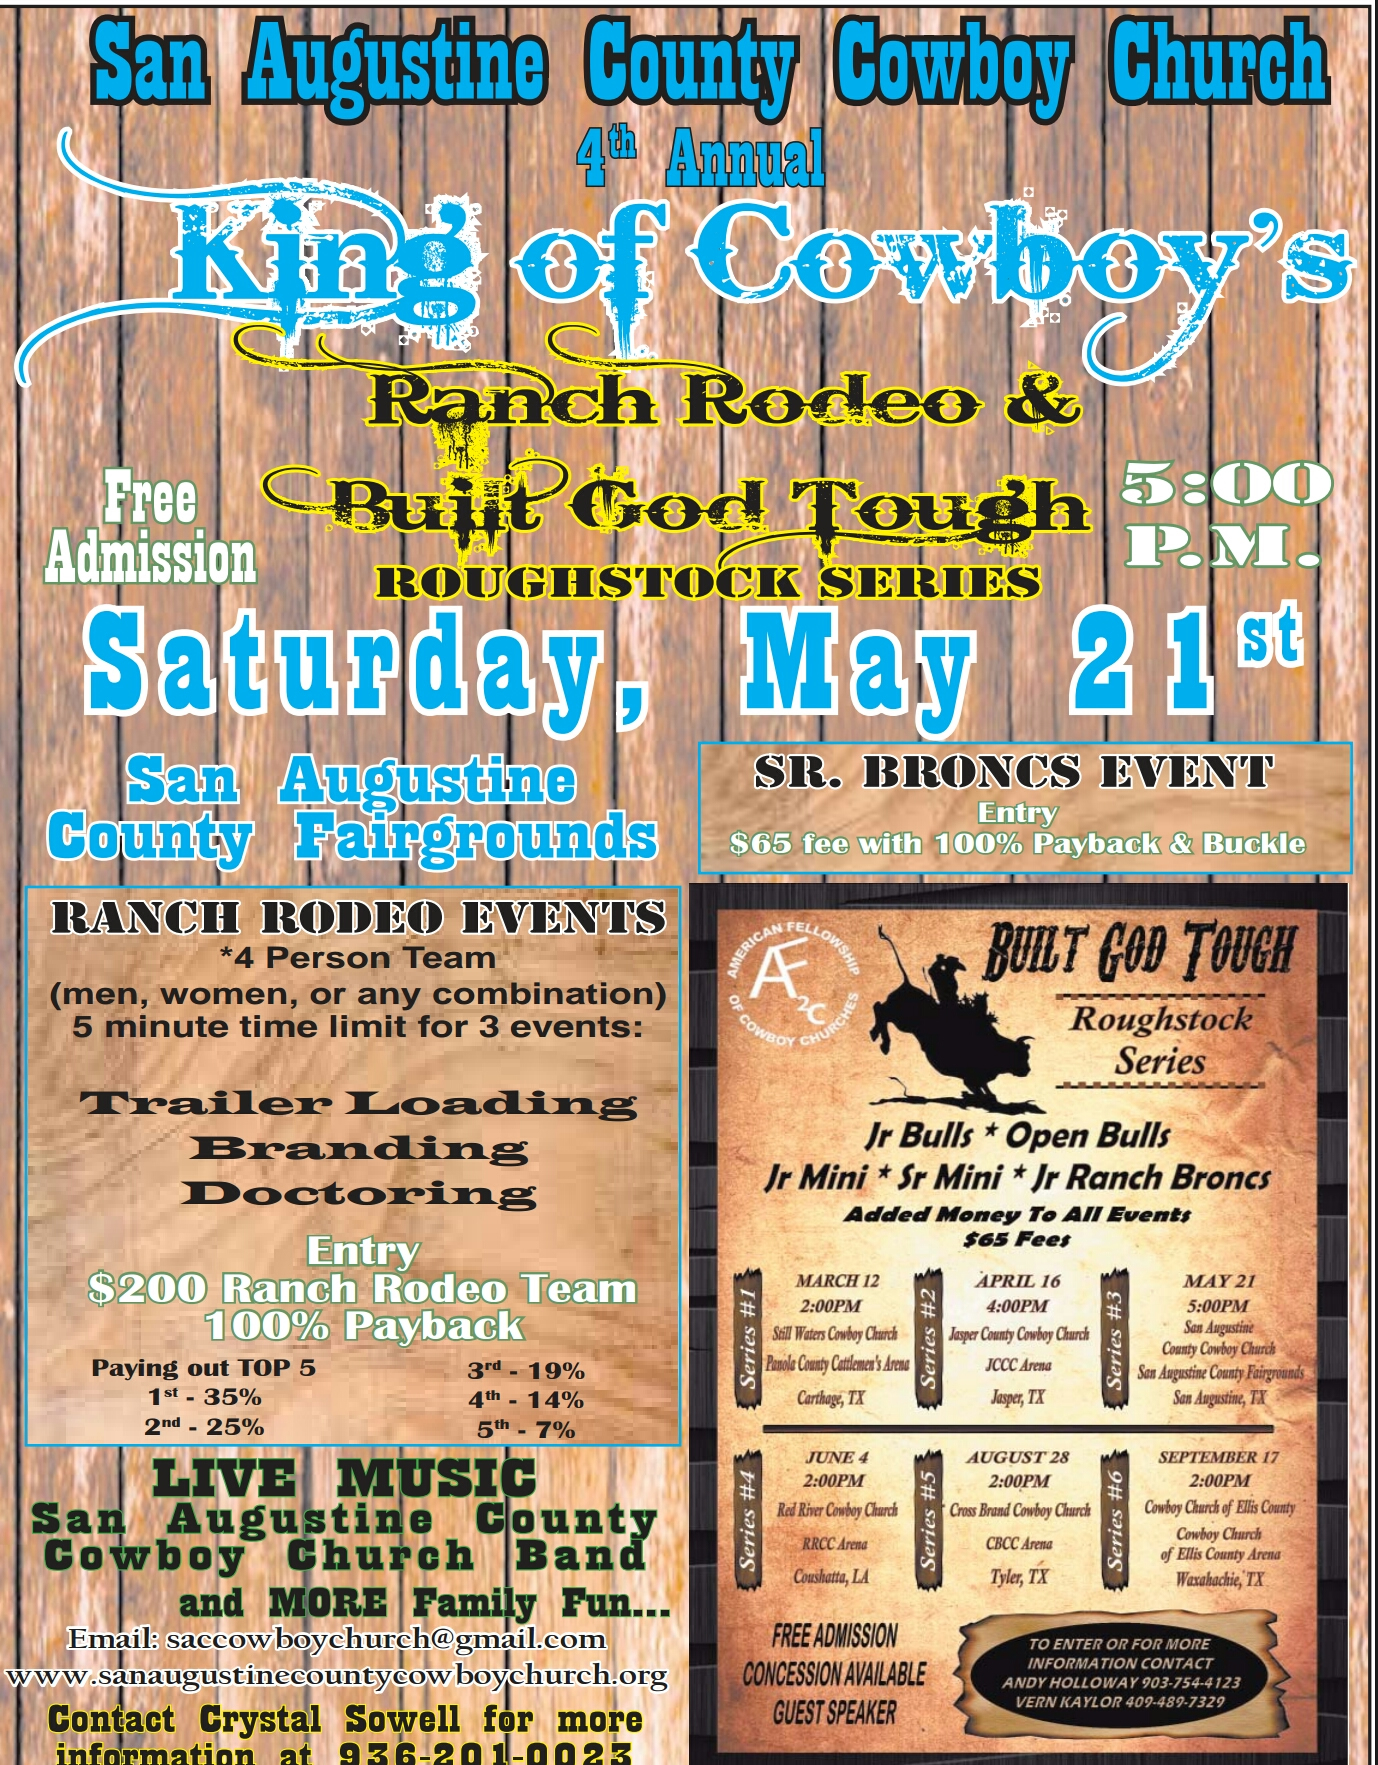 4th Annual King Of Cowboy S Ranch Rodeo Amp Built God Tough